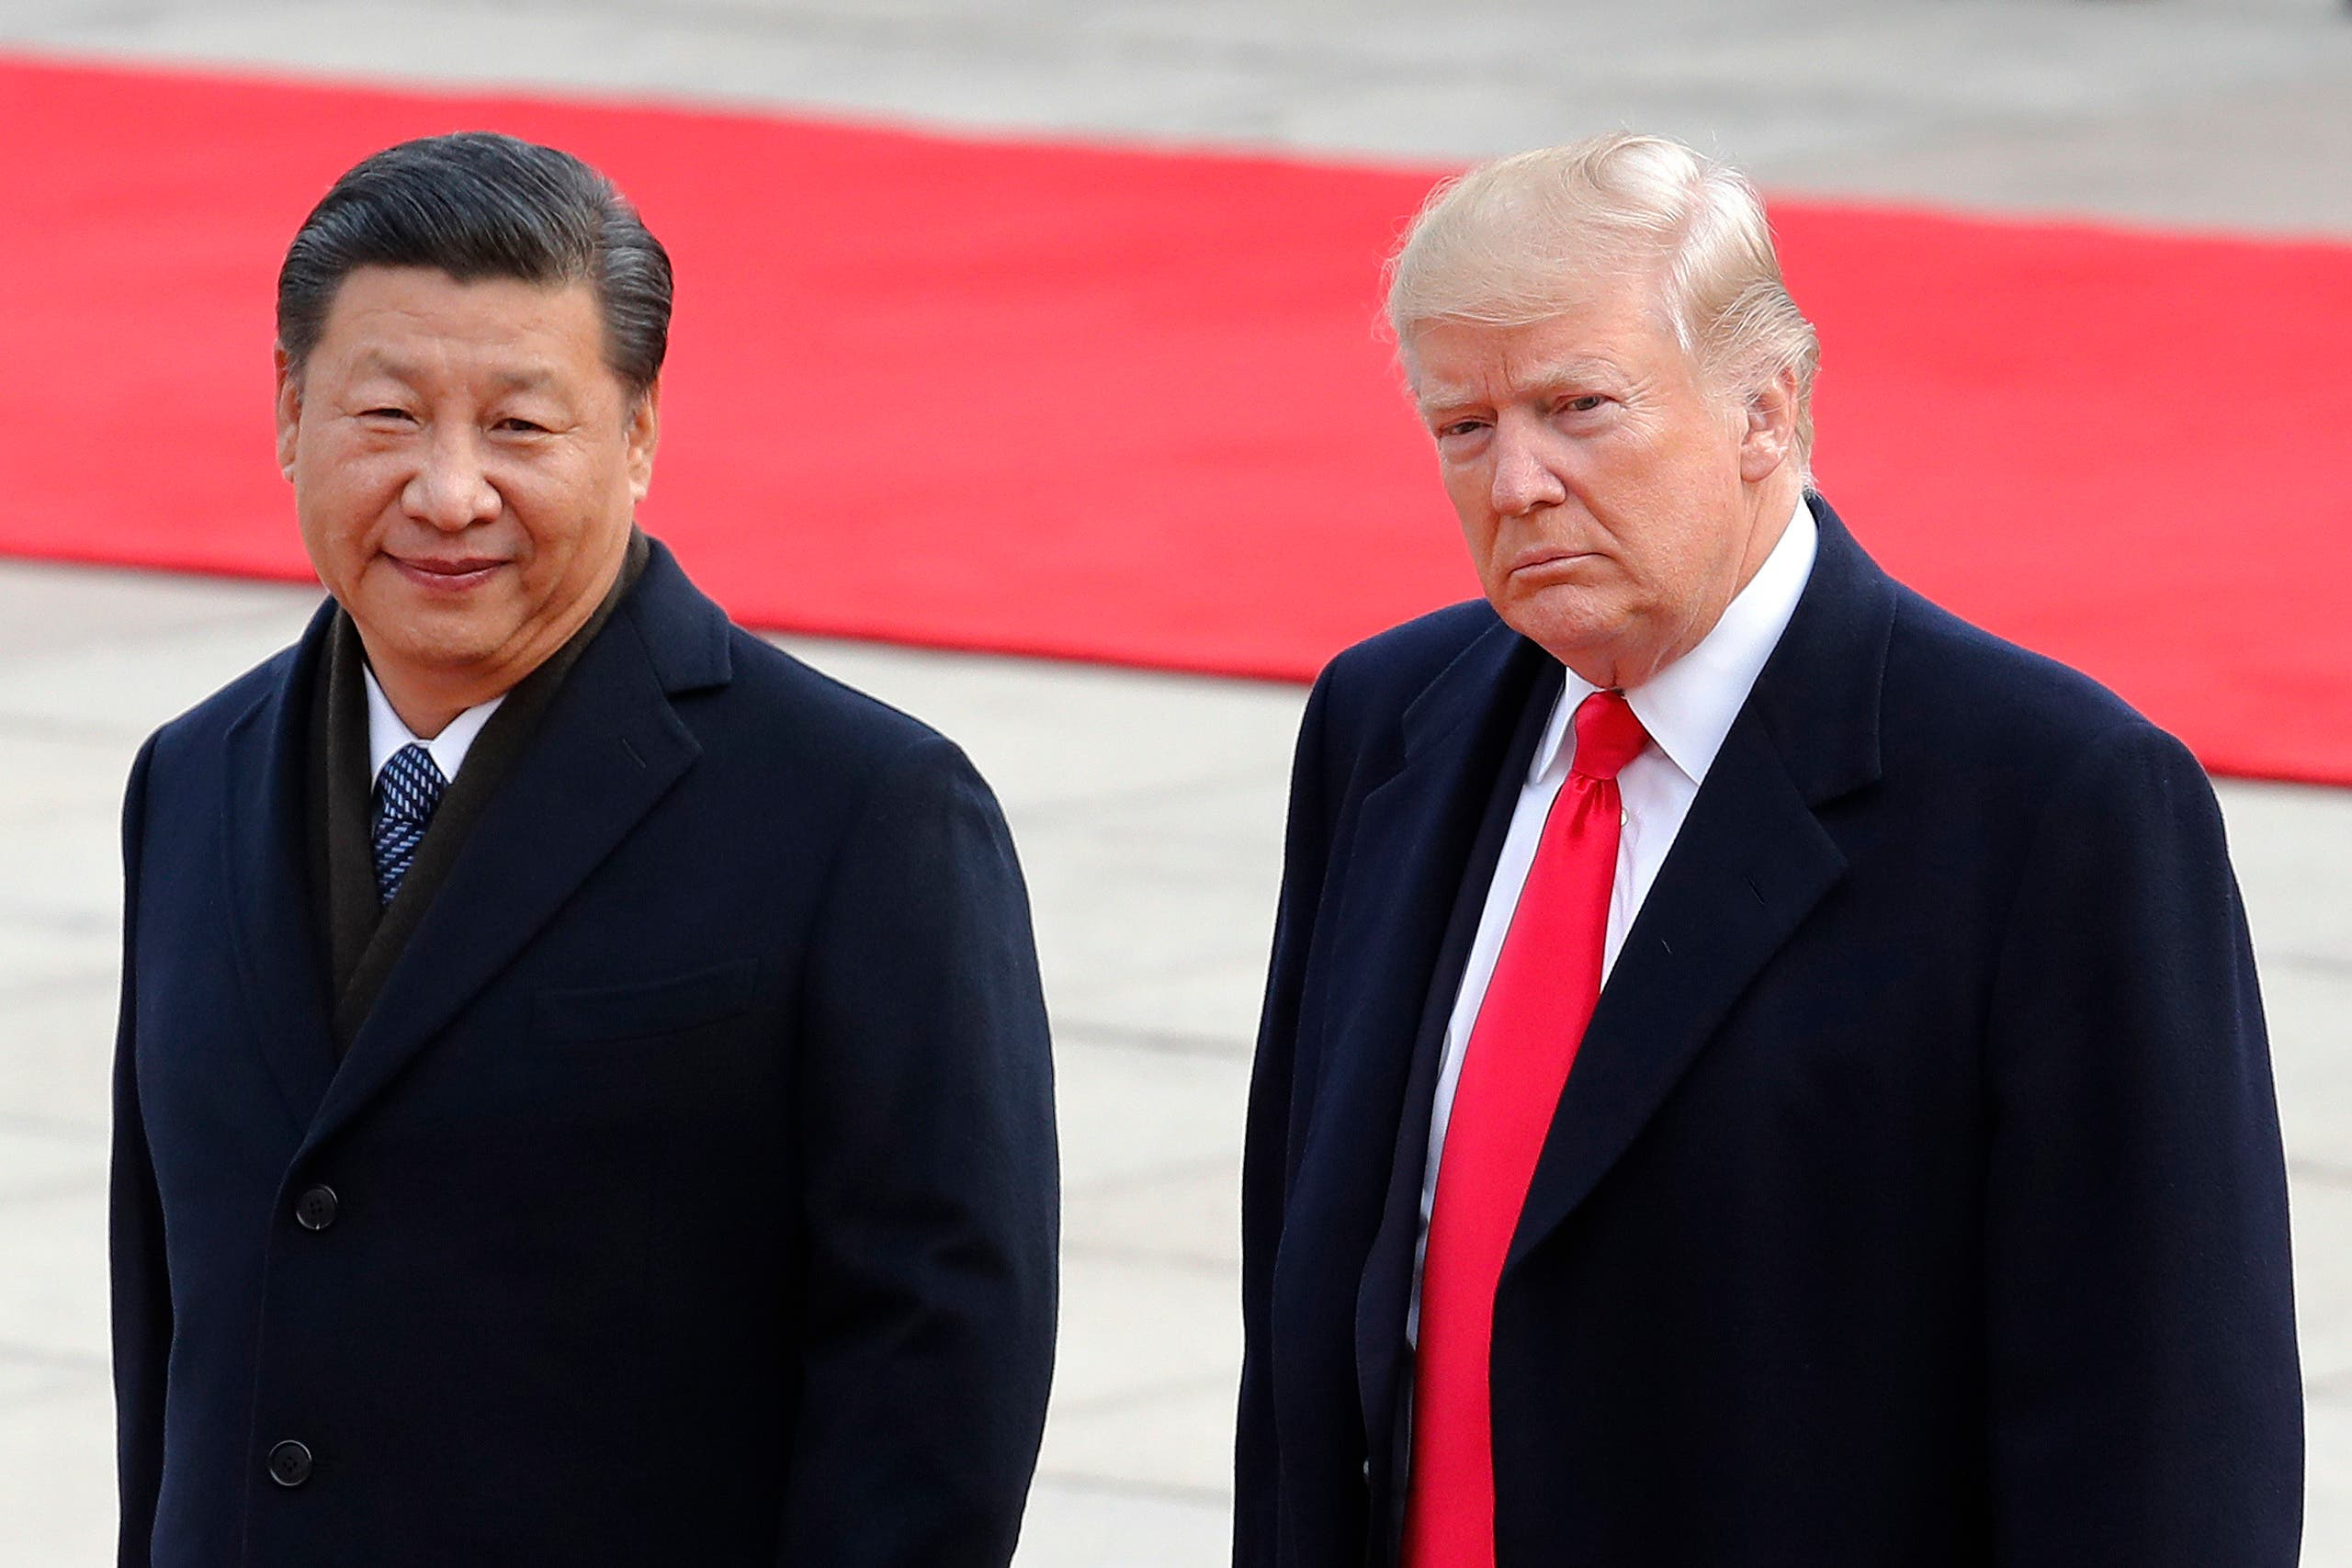 US President Donald Trump, right, walks with Chinese President Xi Jinping in Beijing on Nov. 9, 2017. (AP)